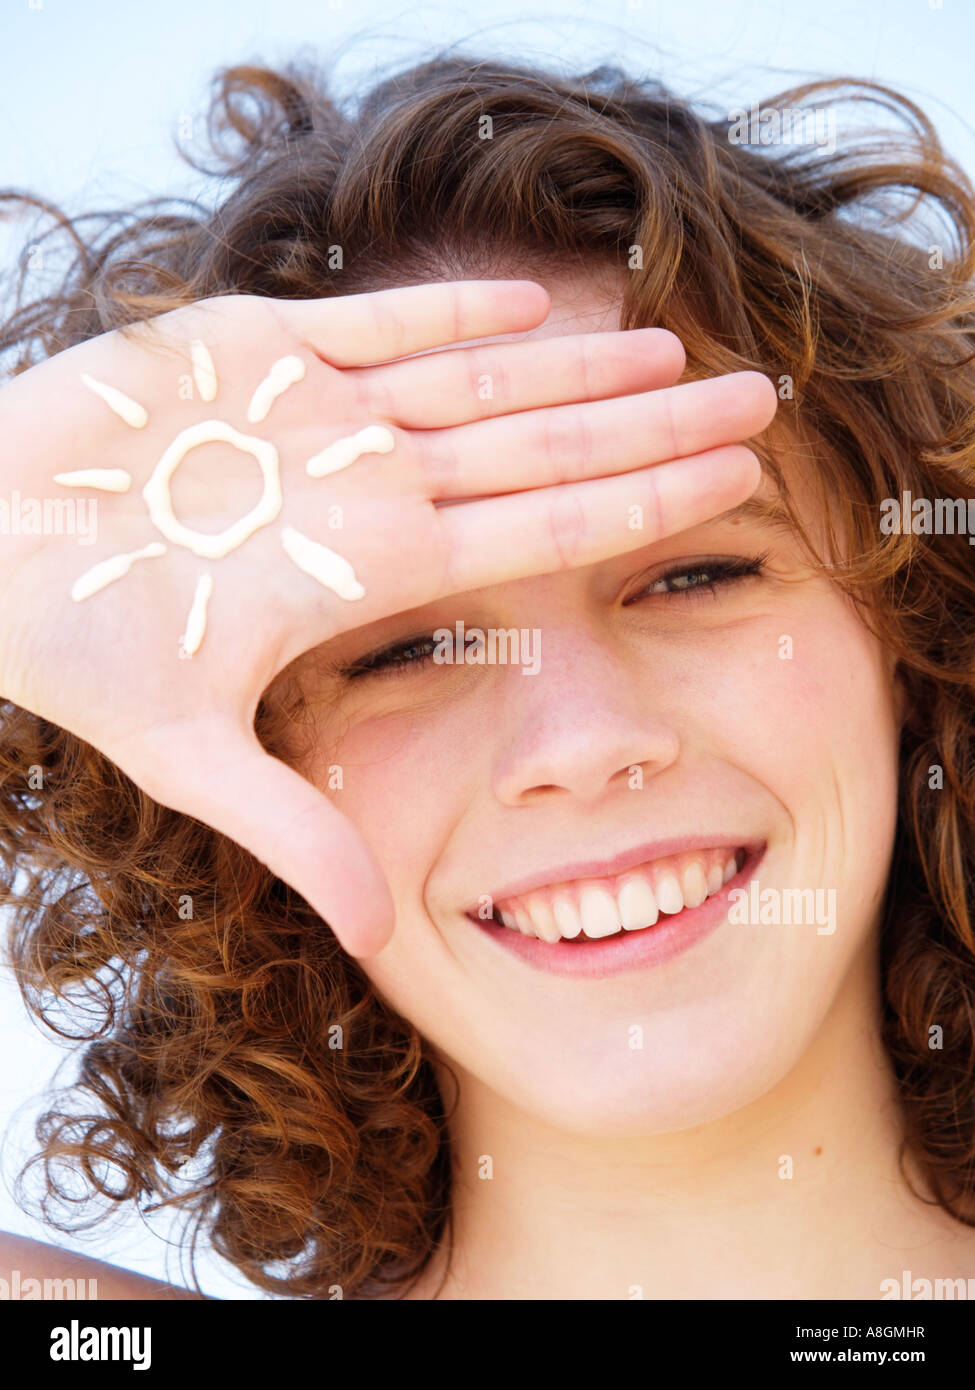 Teenage girl smiling with figure of a sun drawn in suncream on her hand Light skin needs to be protected against - Stock Image